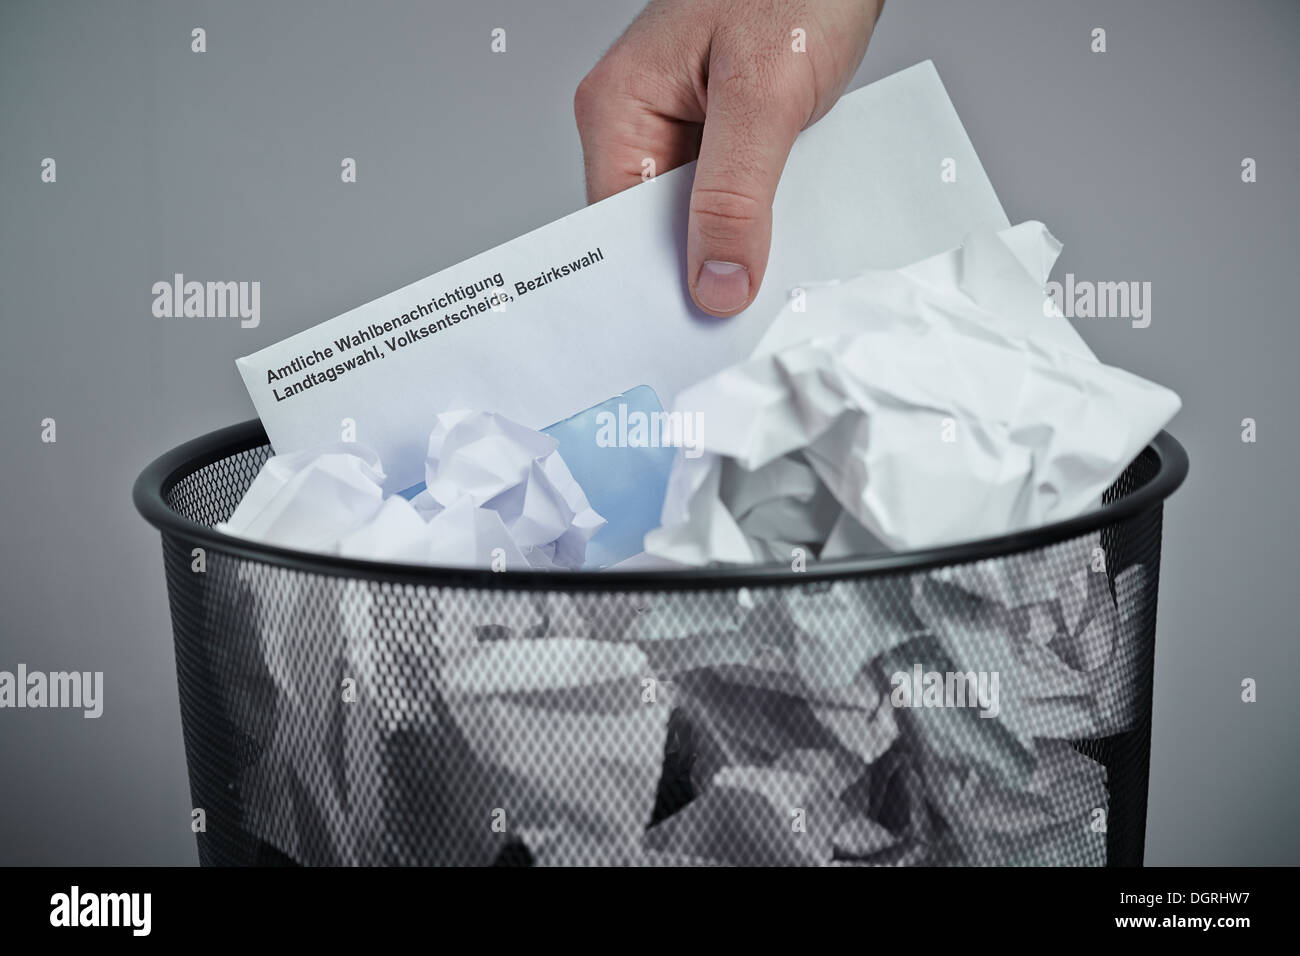 Election voting card in wastepaper basket - Stock Image